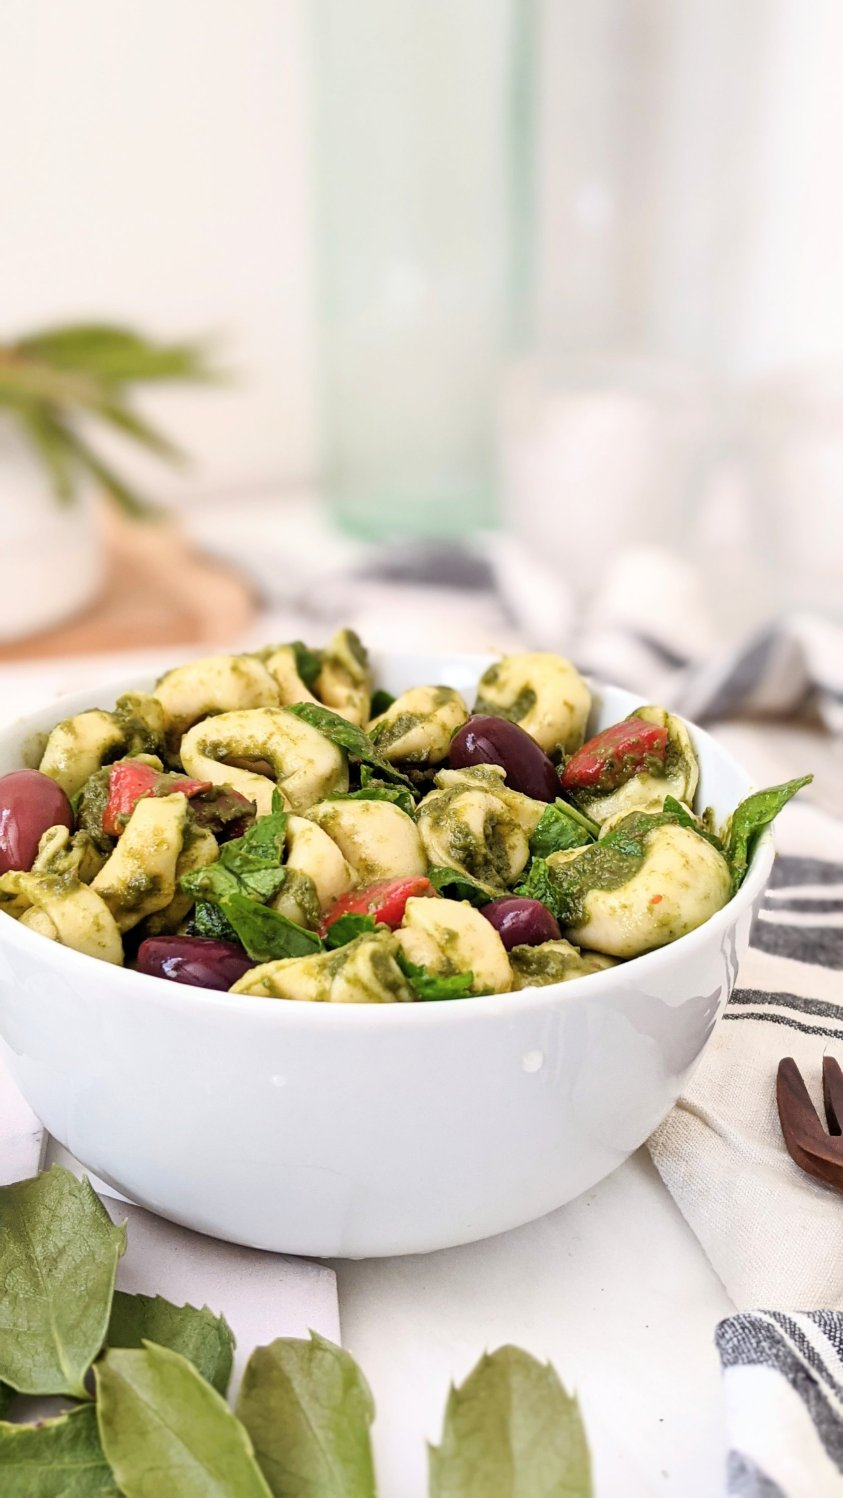 easy tortellini salad with cherry tomatoes healthy plant based pesto pasta salad with kalamata olives roasted red pepper and greek pesto dressing